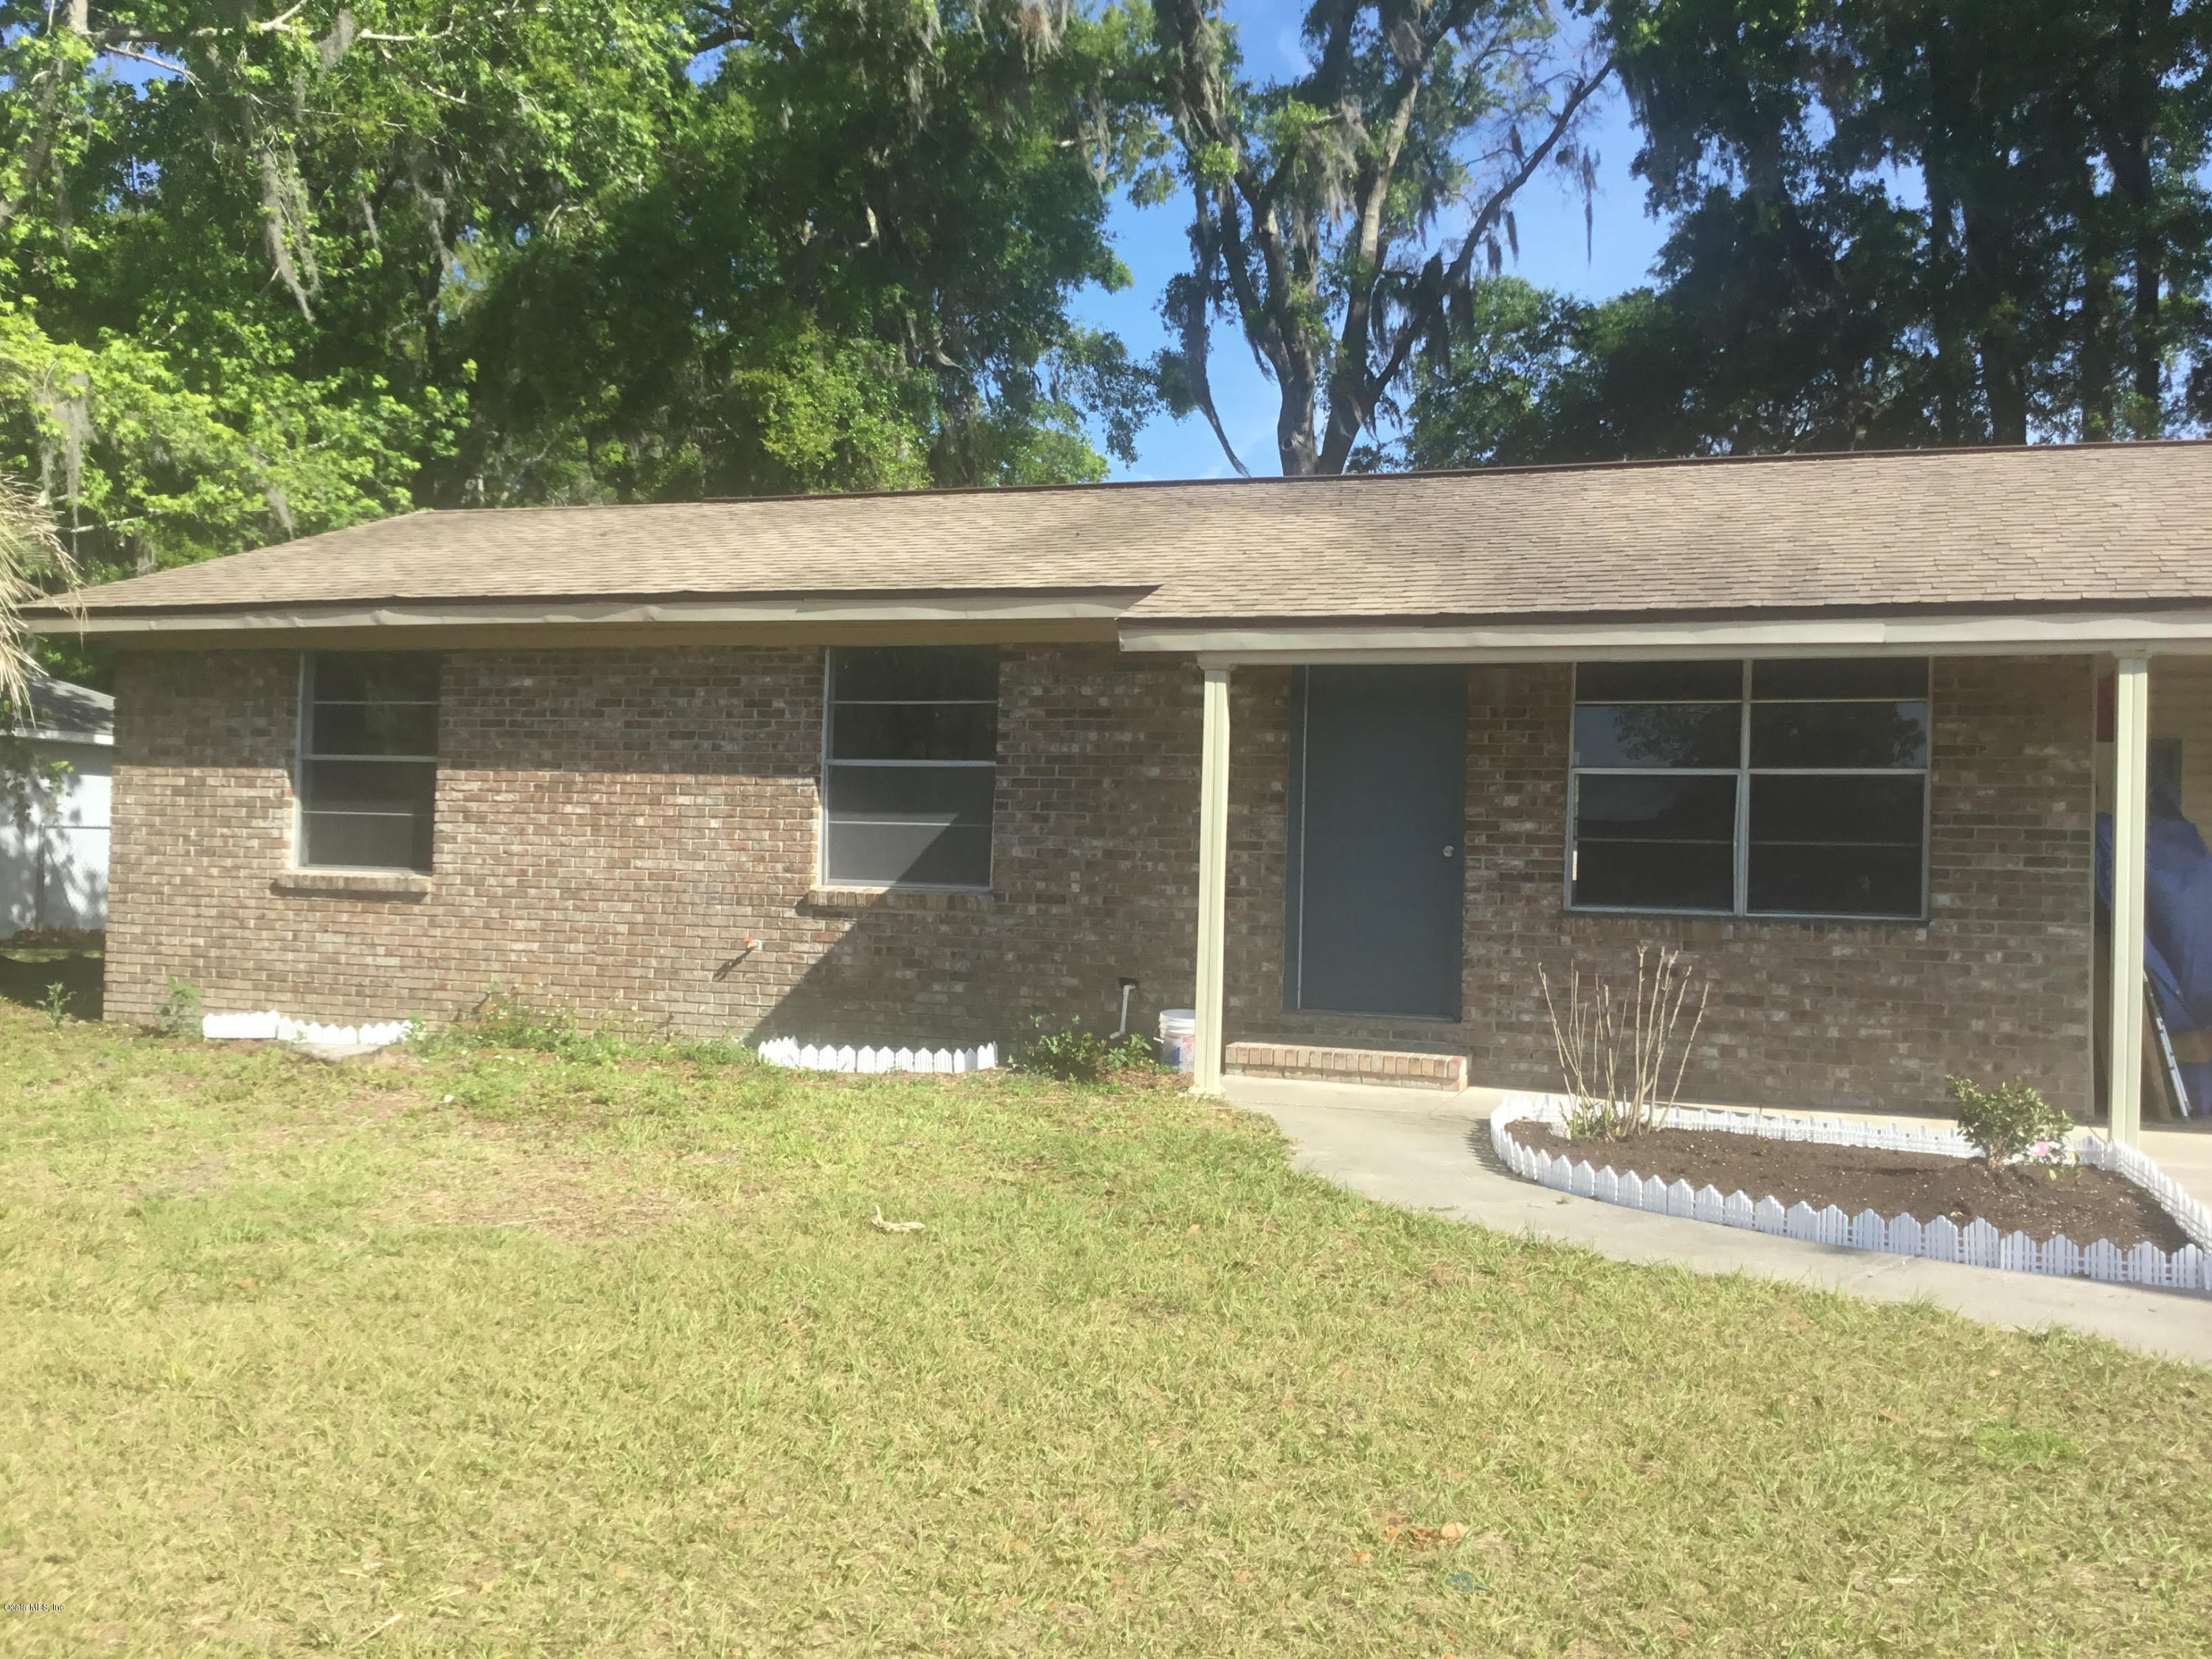 5129 SE 105TH PLACE, BELLEVIEW, FL 34420